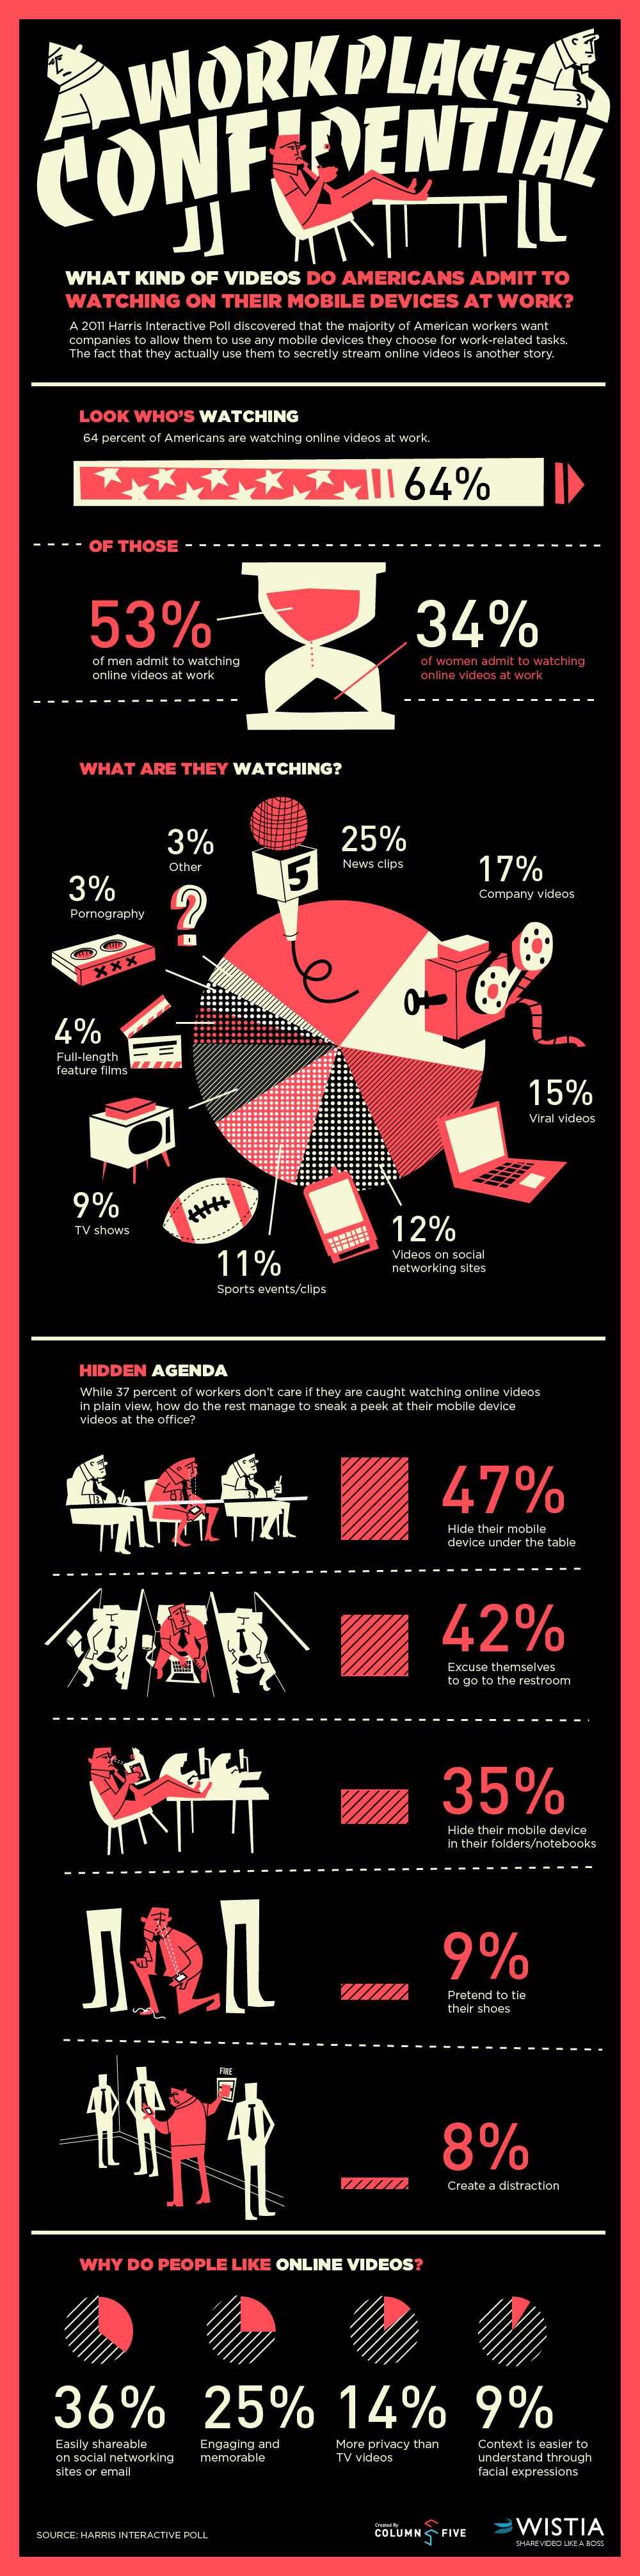 Workplace Confidential, An Infographic